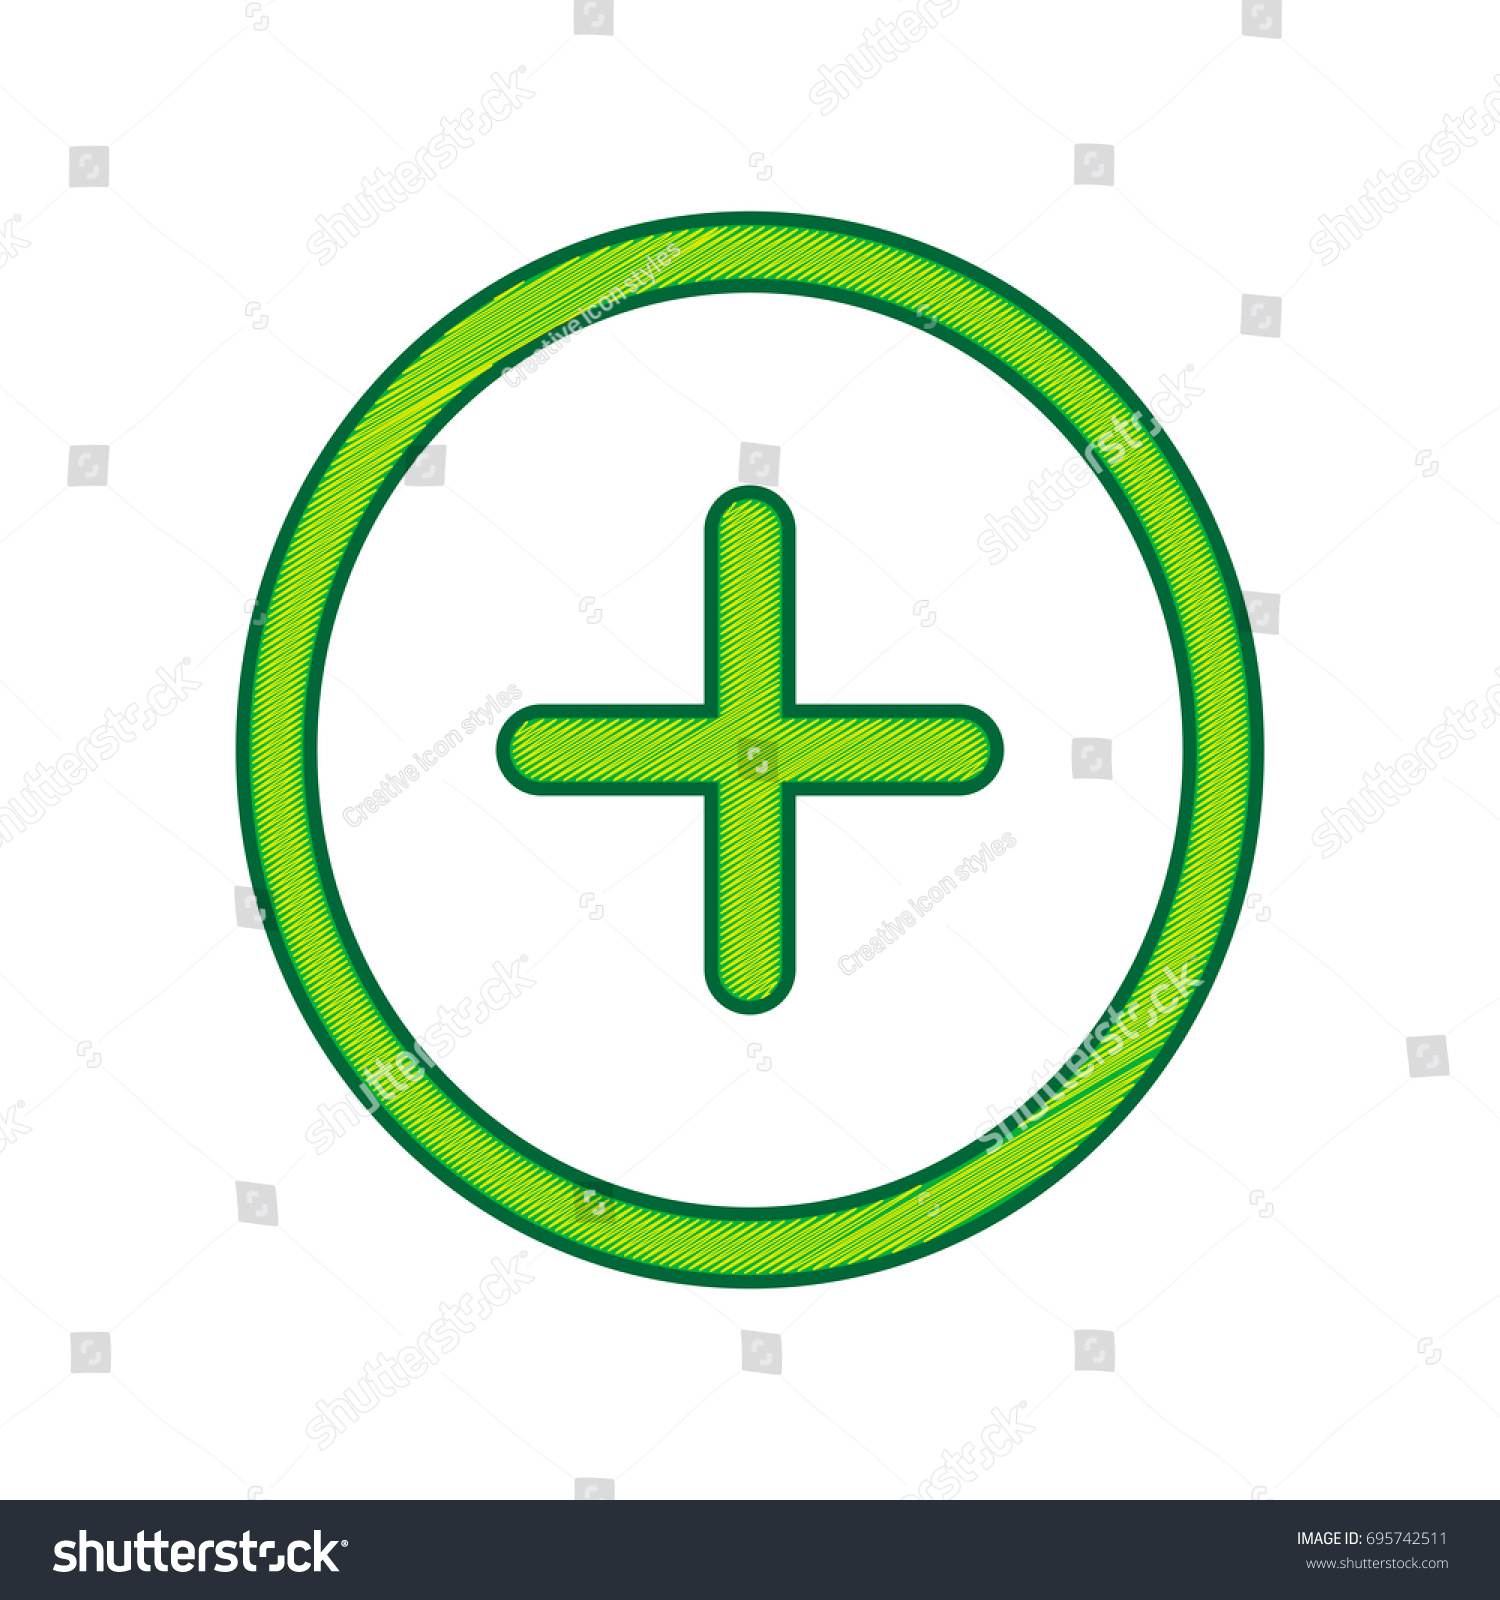 Positive symbol plus sign vector lemon stock vector 695742511 positive symbol plus sign vector lemon scribble icon on white background isolated biocorpaavc Choice Image